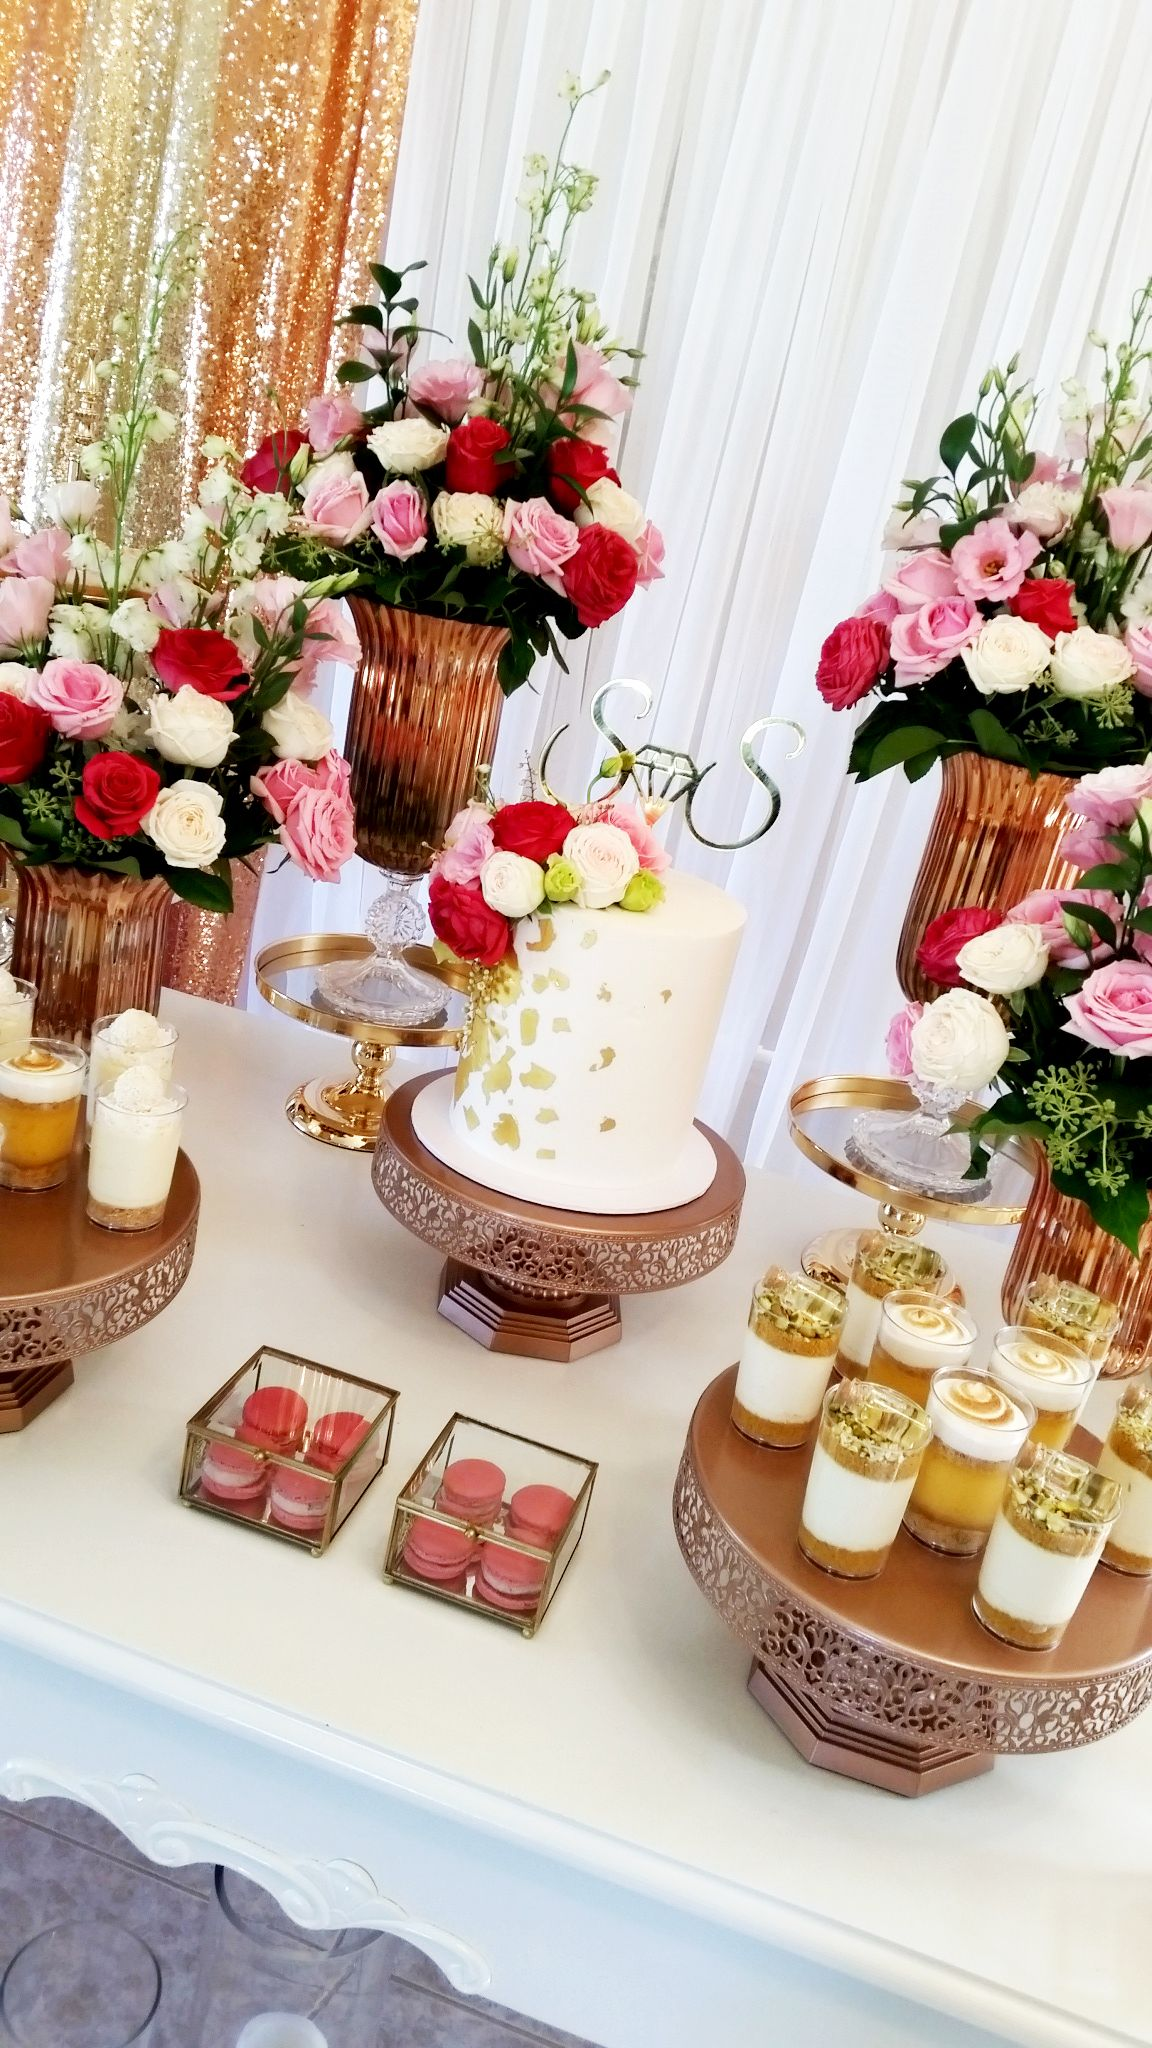 Fabulous Pink And Rose Gold Birthday Party Dessert Table Styling By Creme Co By Touran Rose Gol Candy Table Decorations Rose Gold Cake Stand Rose Gold Cake